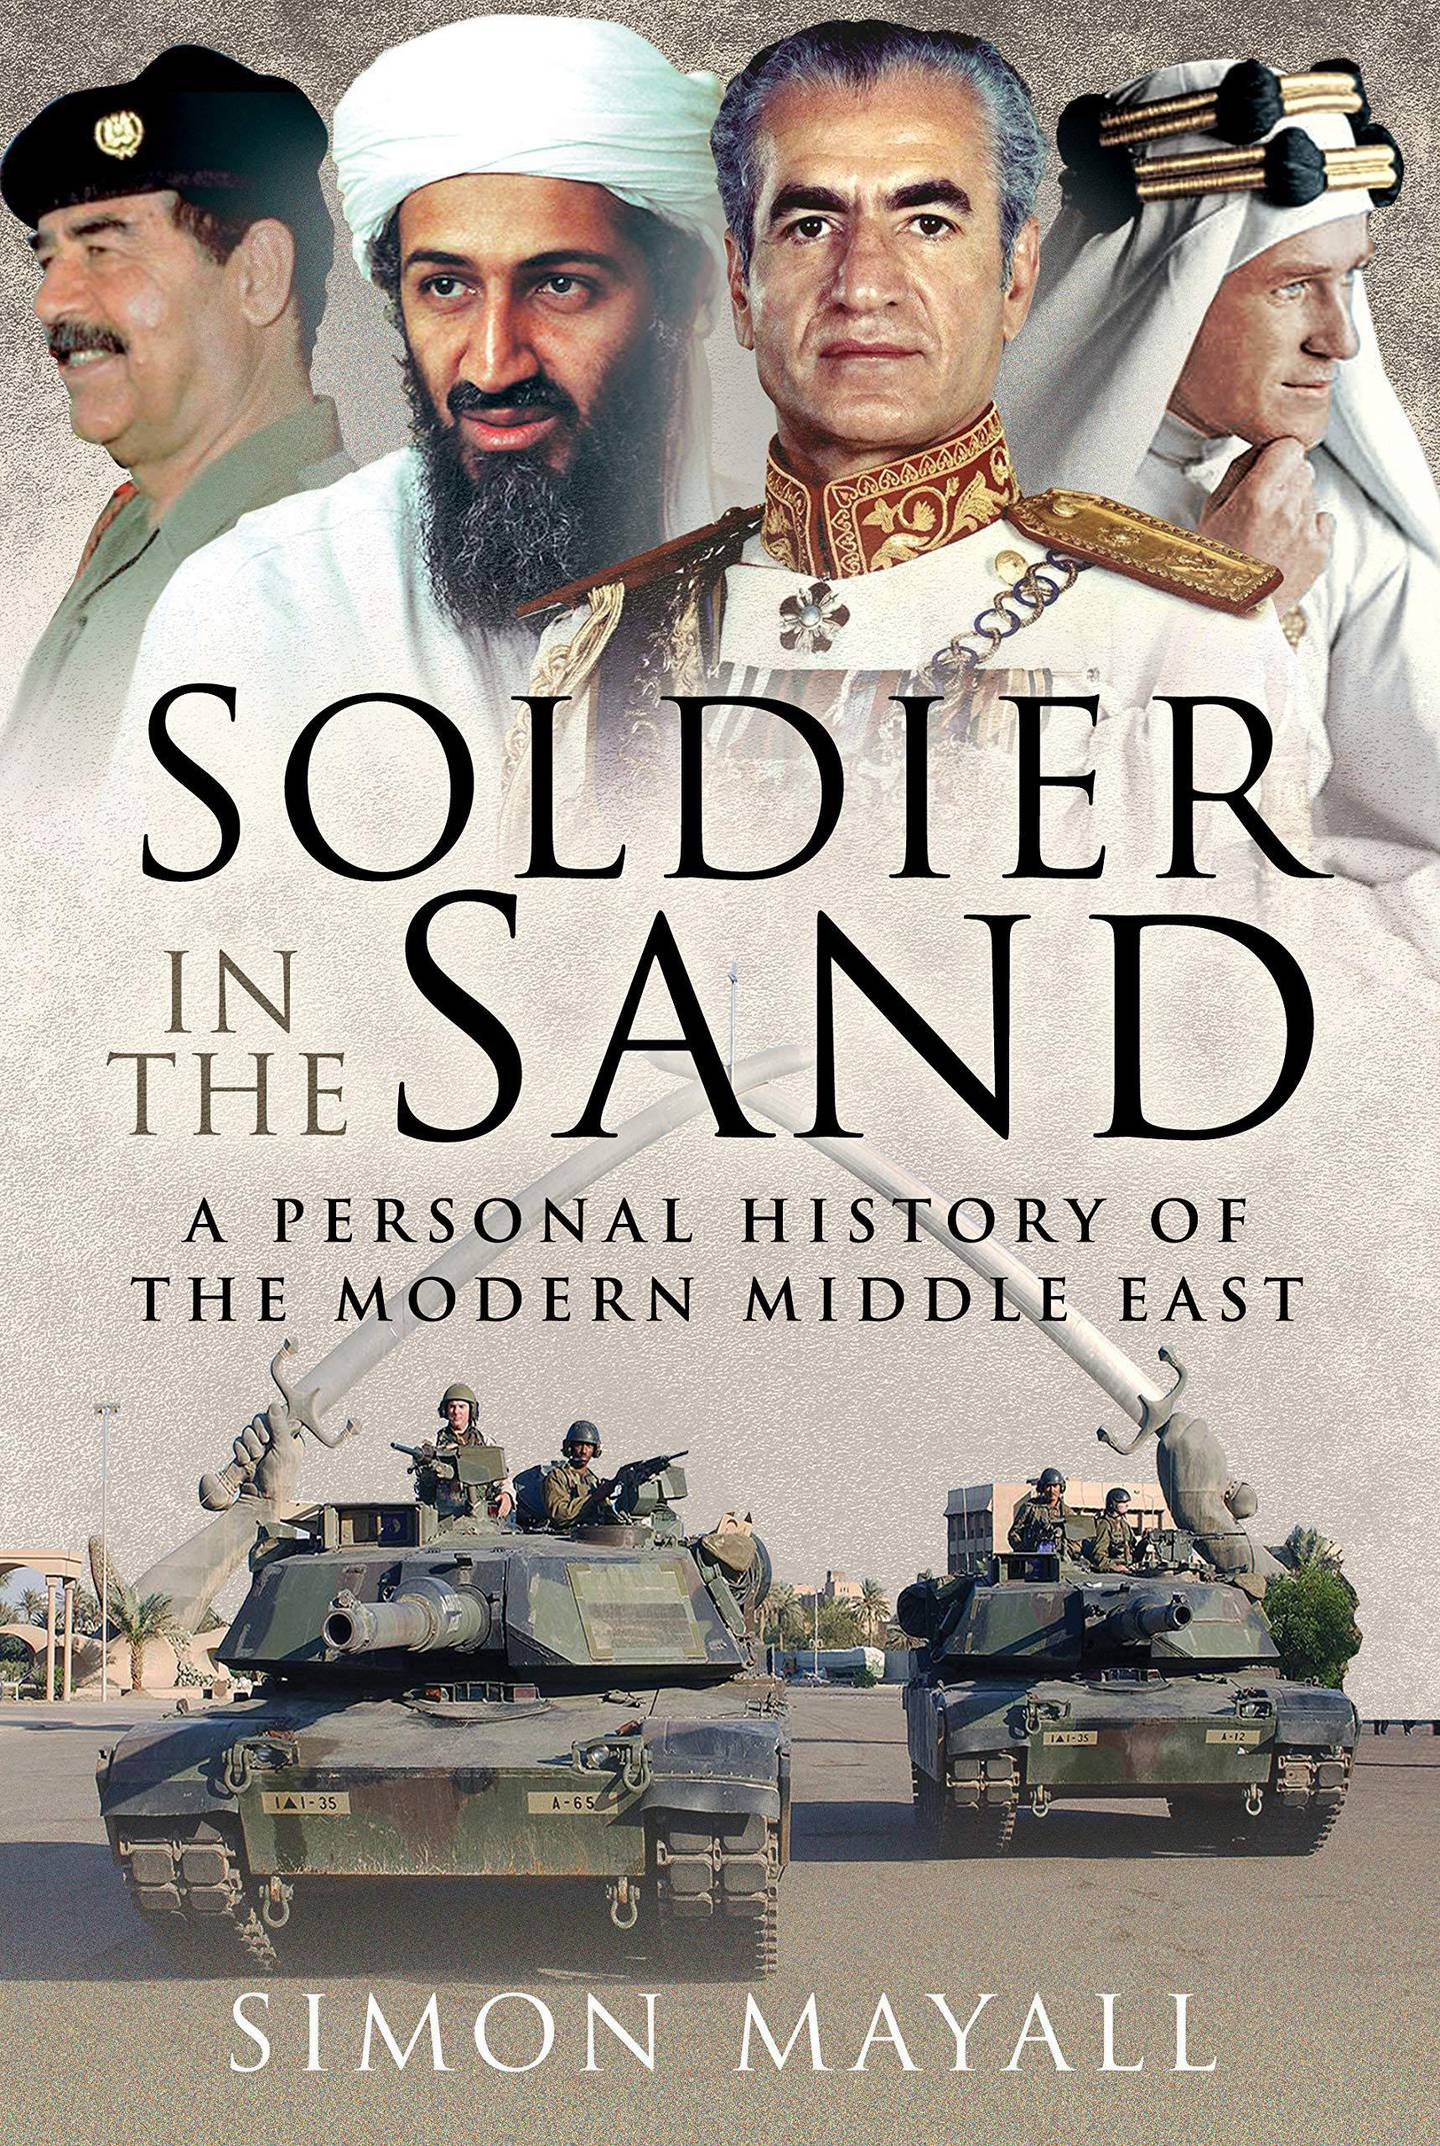 Soldier in the Sand: A Personal History of the Modern Middle East by Simon Mayall. Courtesy Pen & Sword Military